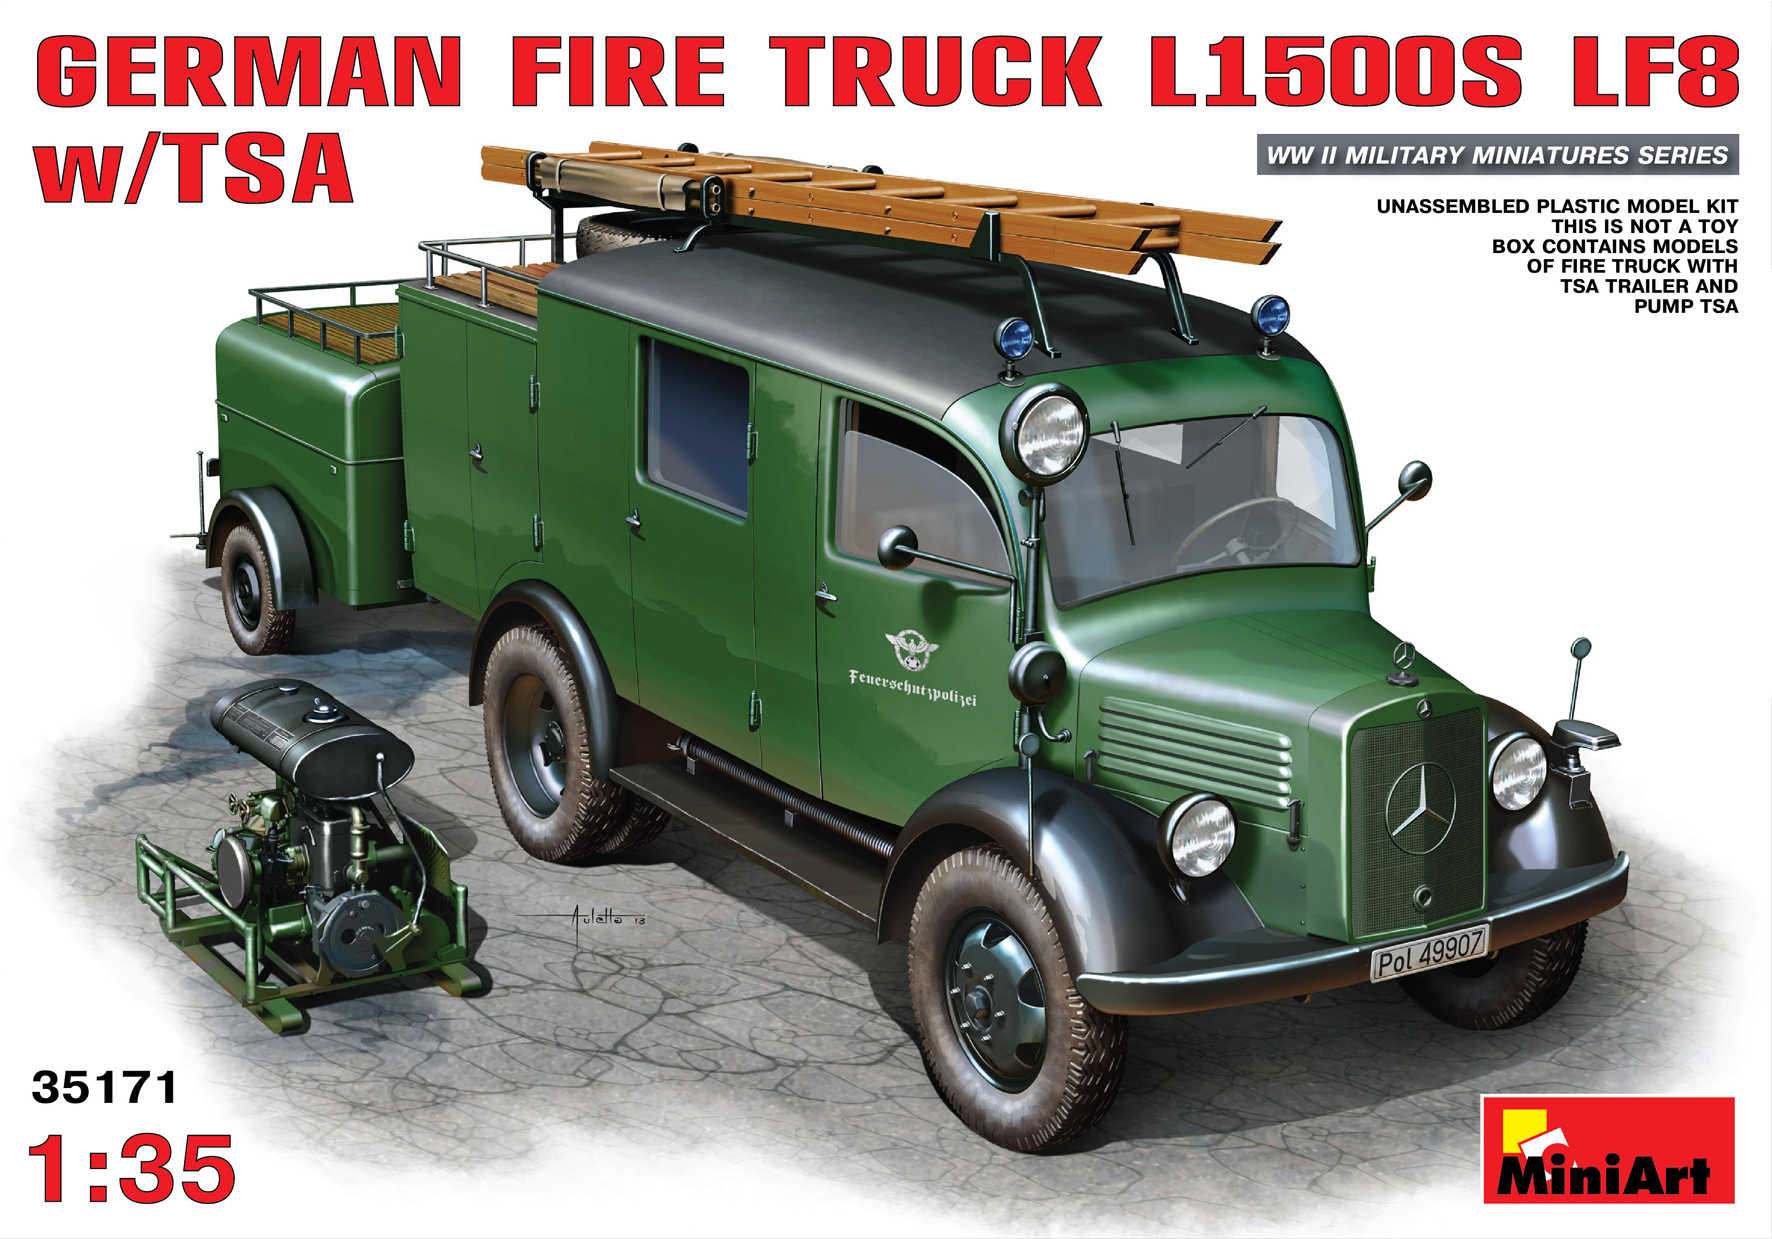 GERMAN FIRE TRUCK L1500S LF8 w/TSA